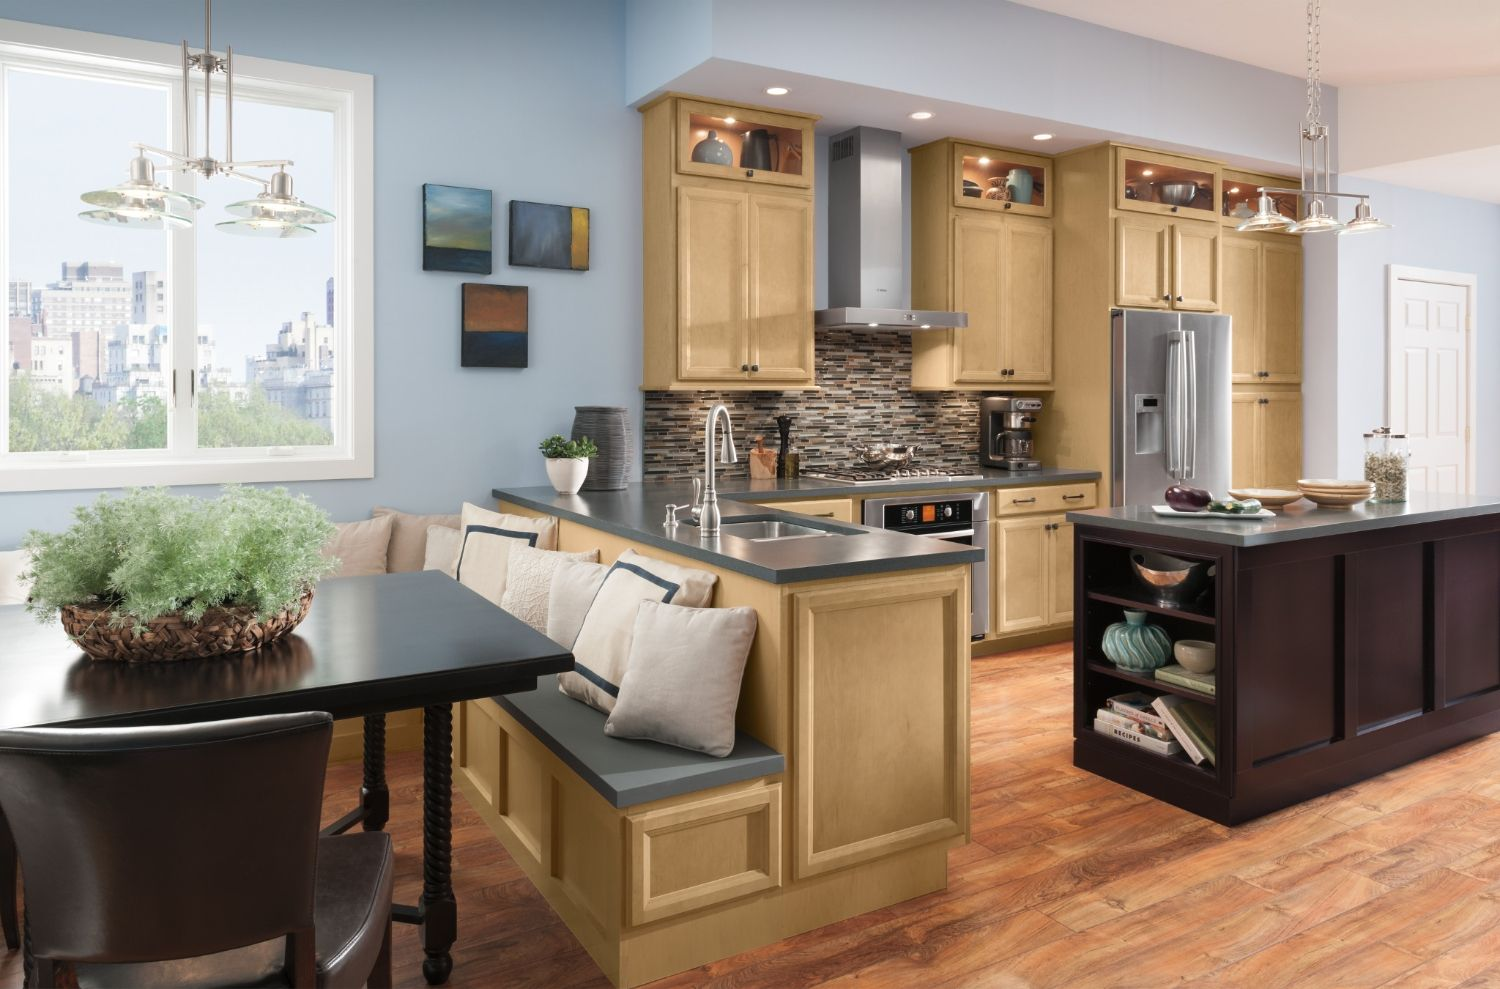 Shenandoah Maple kitchen Blue kitchen